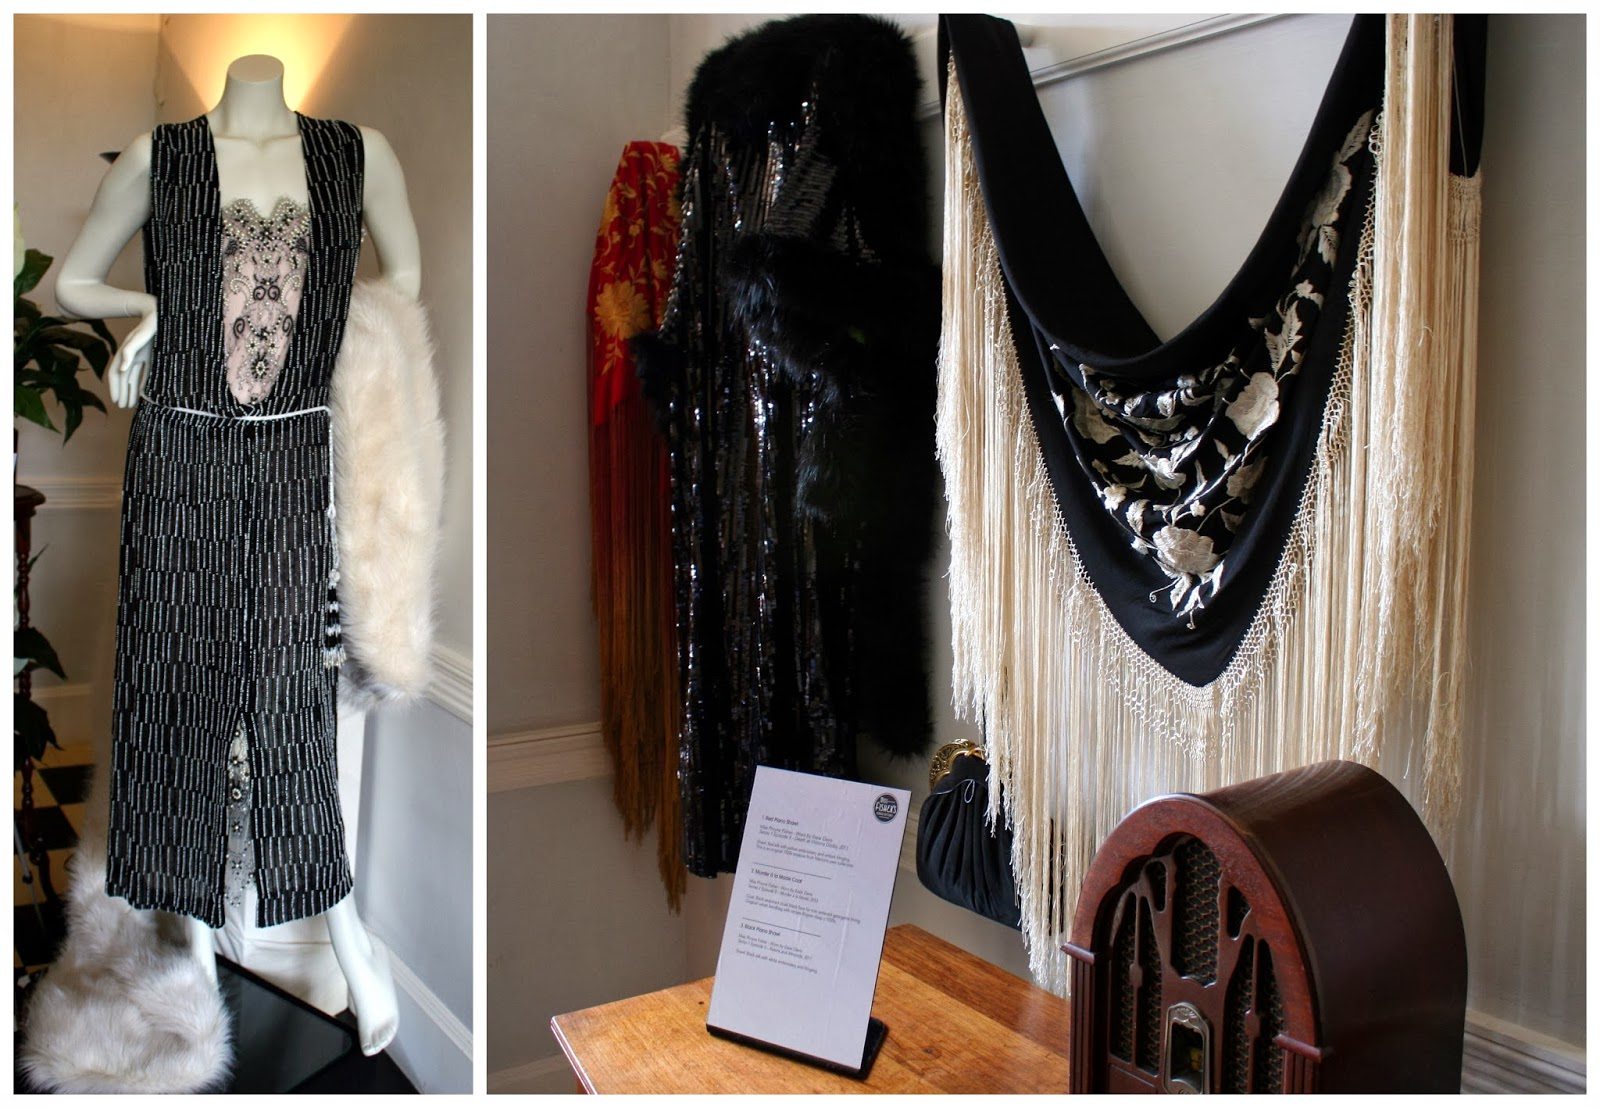 91a9286fd02257 In the entrance to the house we were greeted with these stunning shawl as  well as this beautiful ensemble. The white (faux) fur wrap was worn by  Phryne in ...